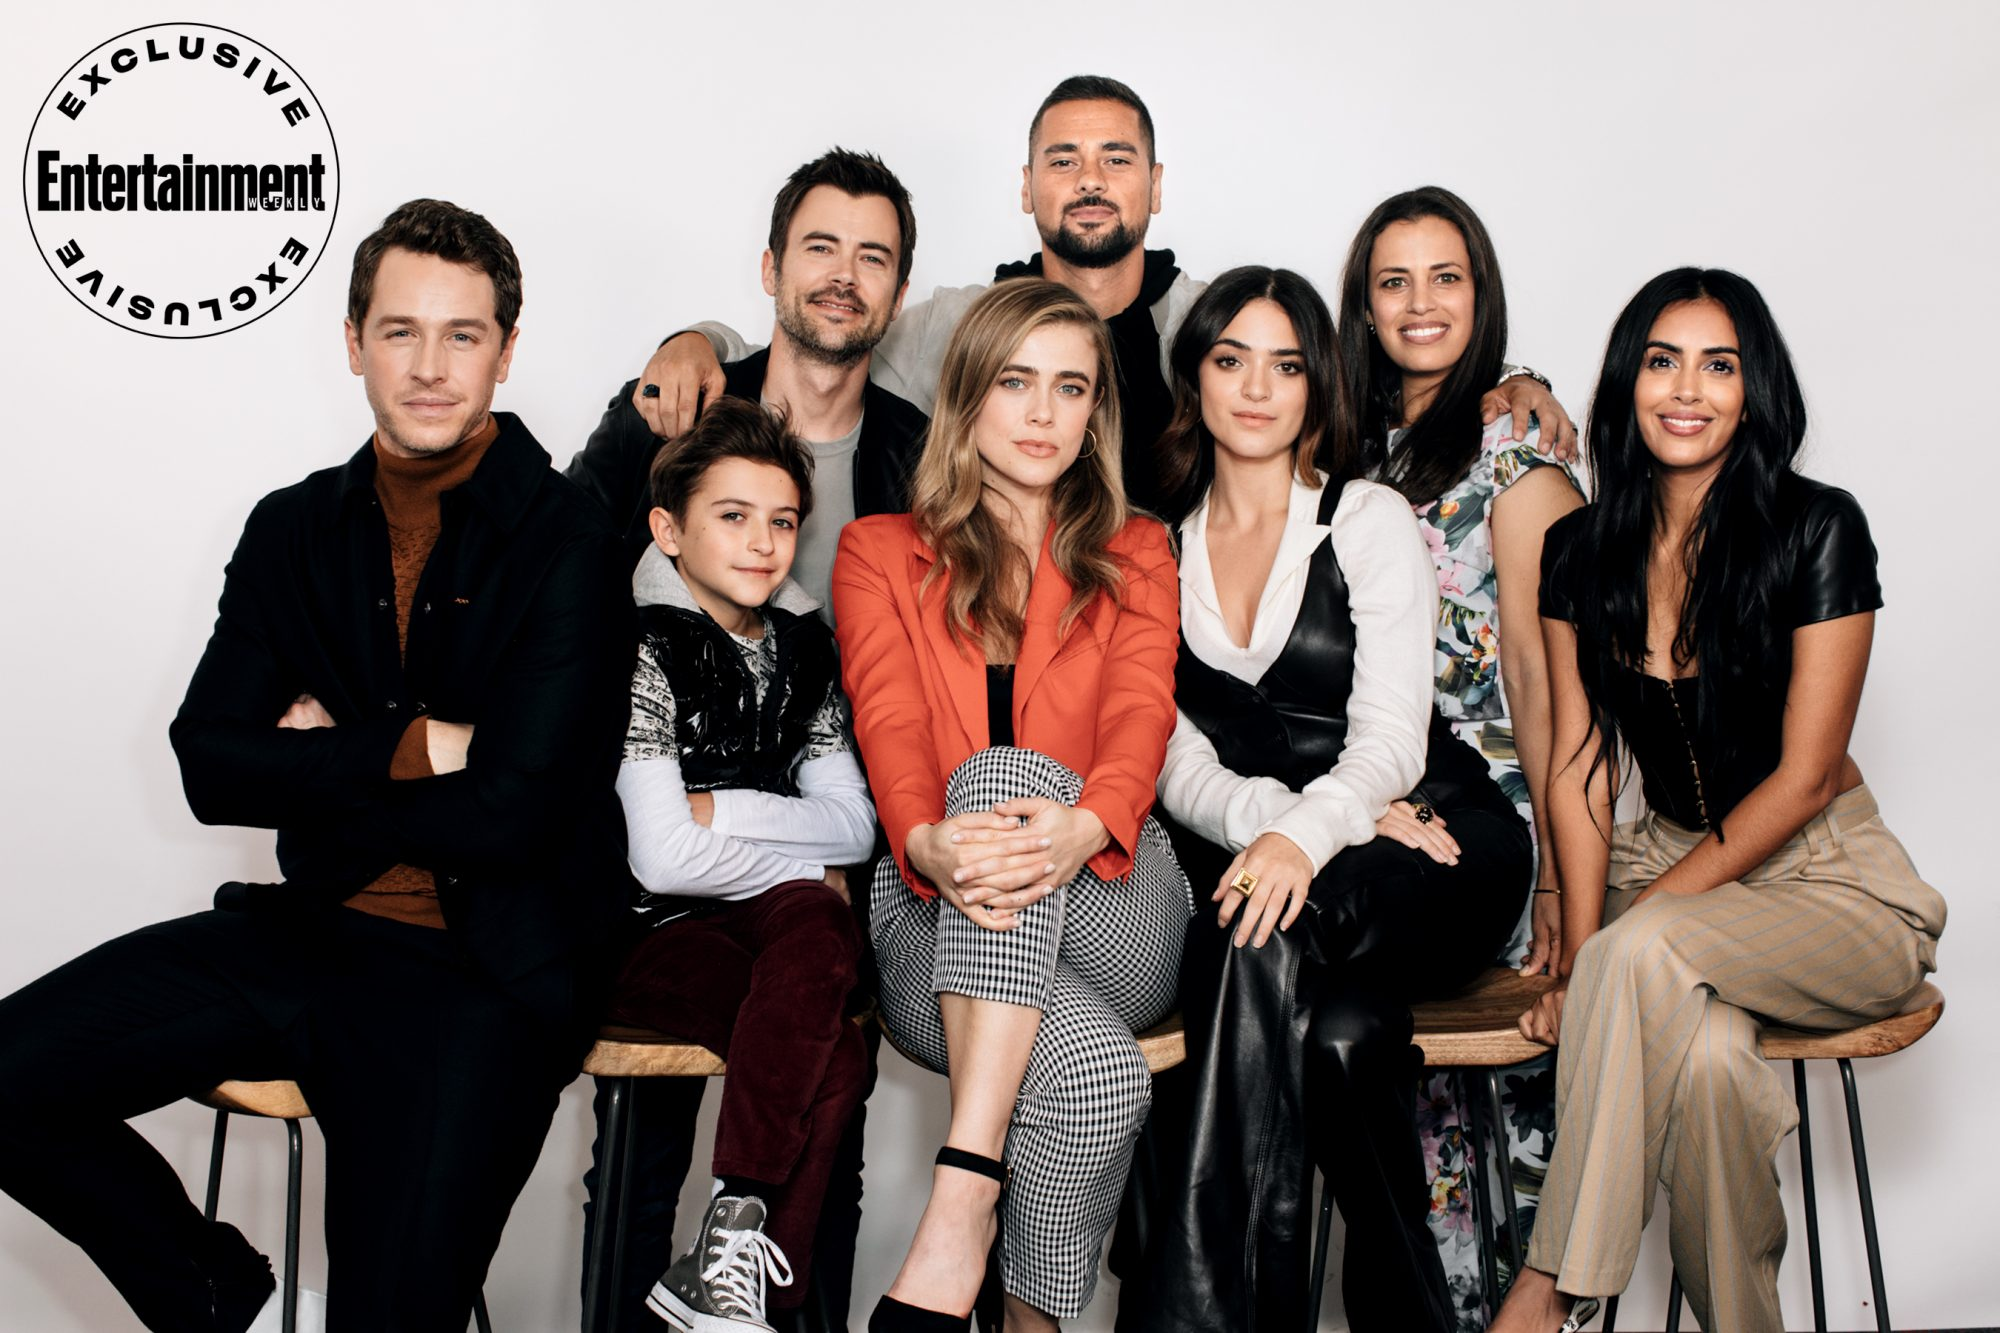 Josh Dallas, Jack Messina, Matt Long, Melissa Roxburgh, J.R. Ramirez, Luna Blaise, Athena Karkanis, and Parveen Kaur from Manifest